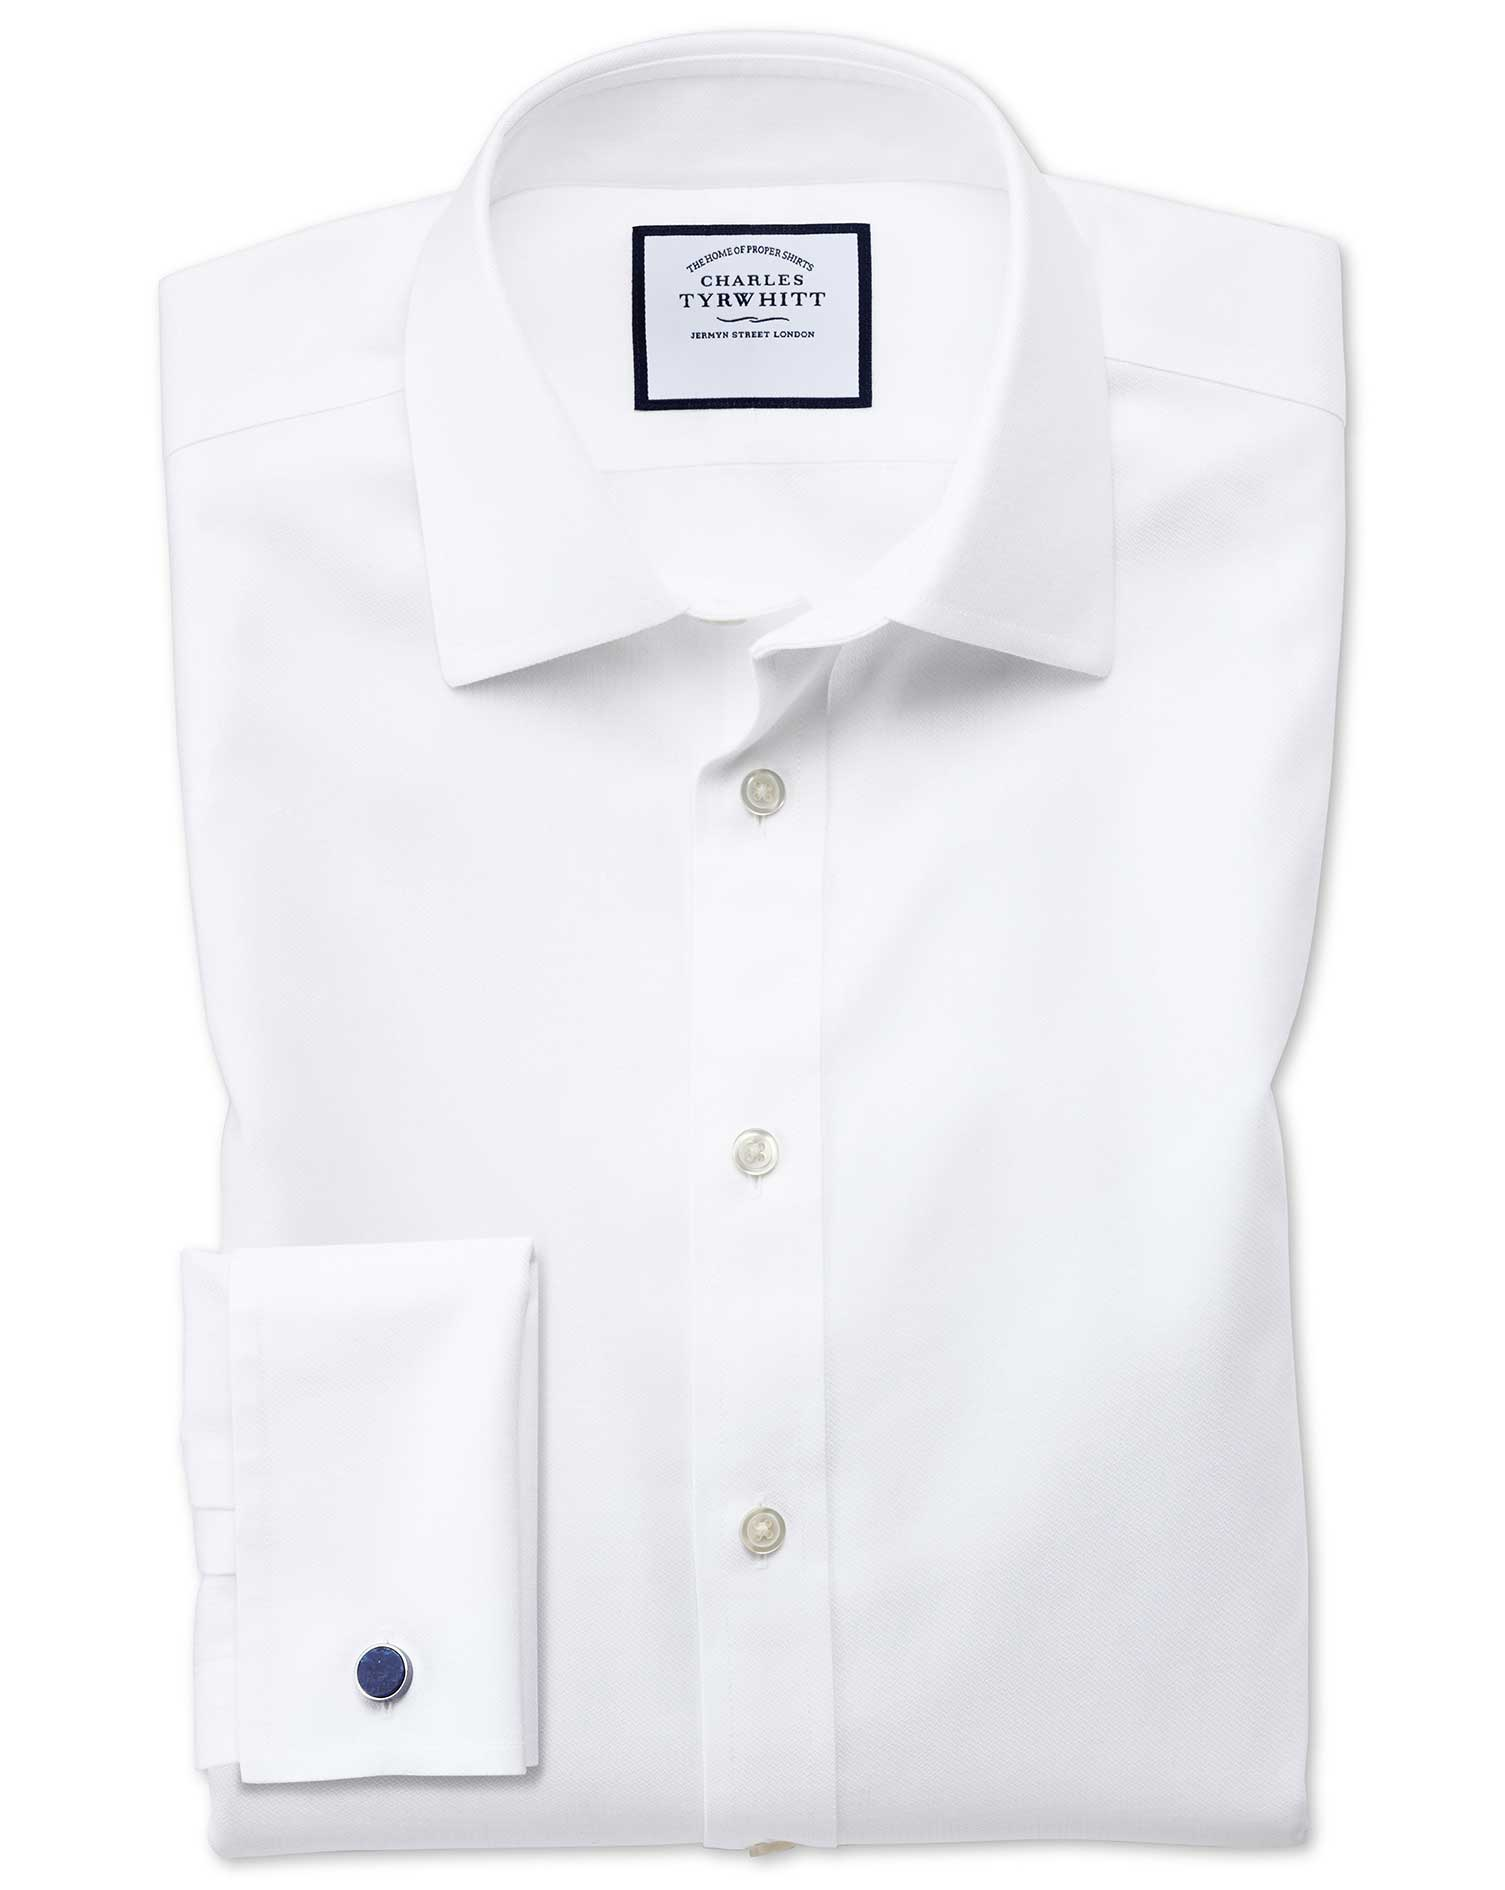 Classic Fit Non-Iron Step Weave White Cotton Formal Shirt Single Cuff Size 18/36 by Charles Tyrwhitt